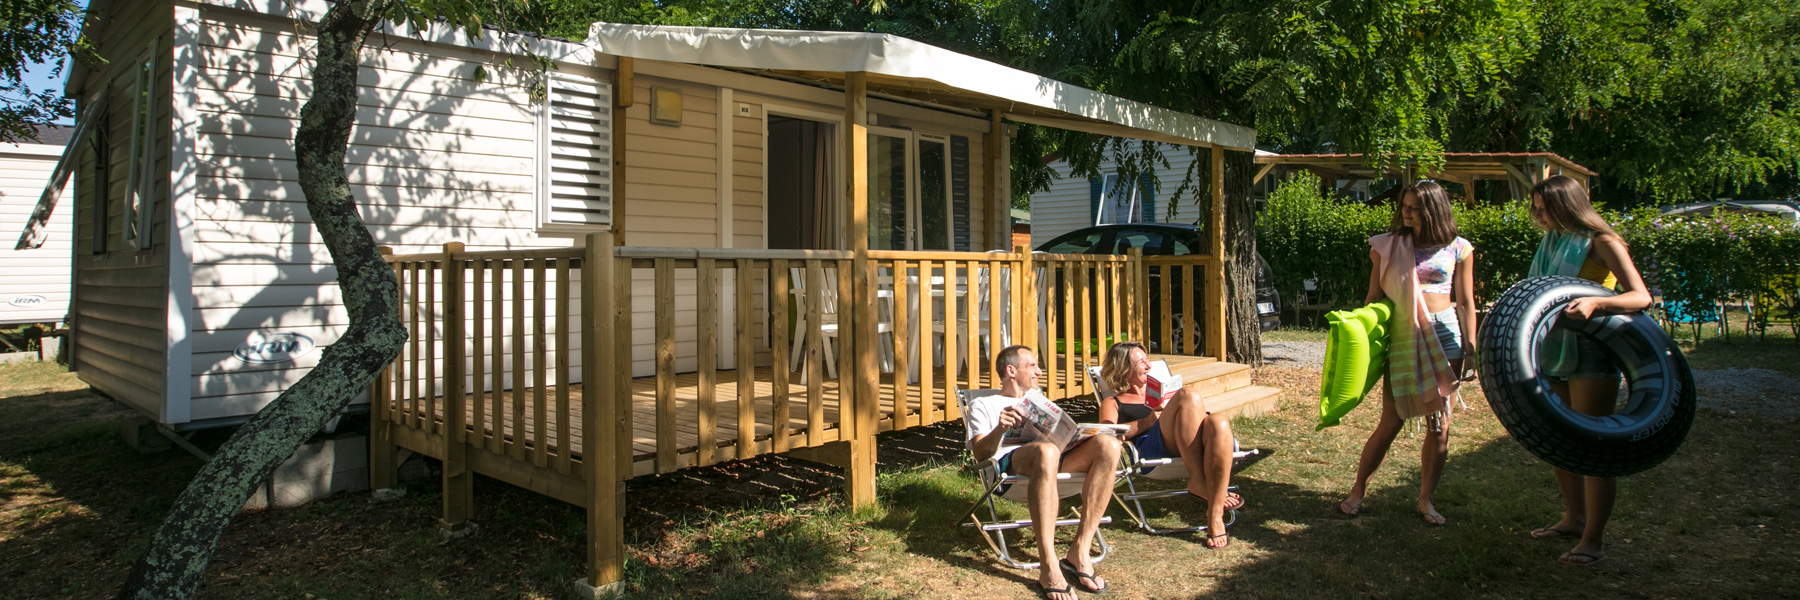 Mobil-Homes du camping